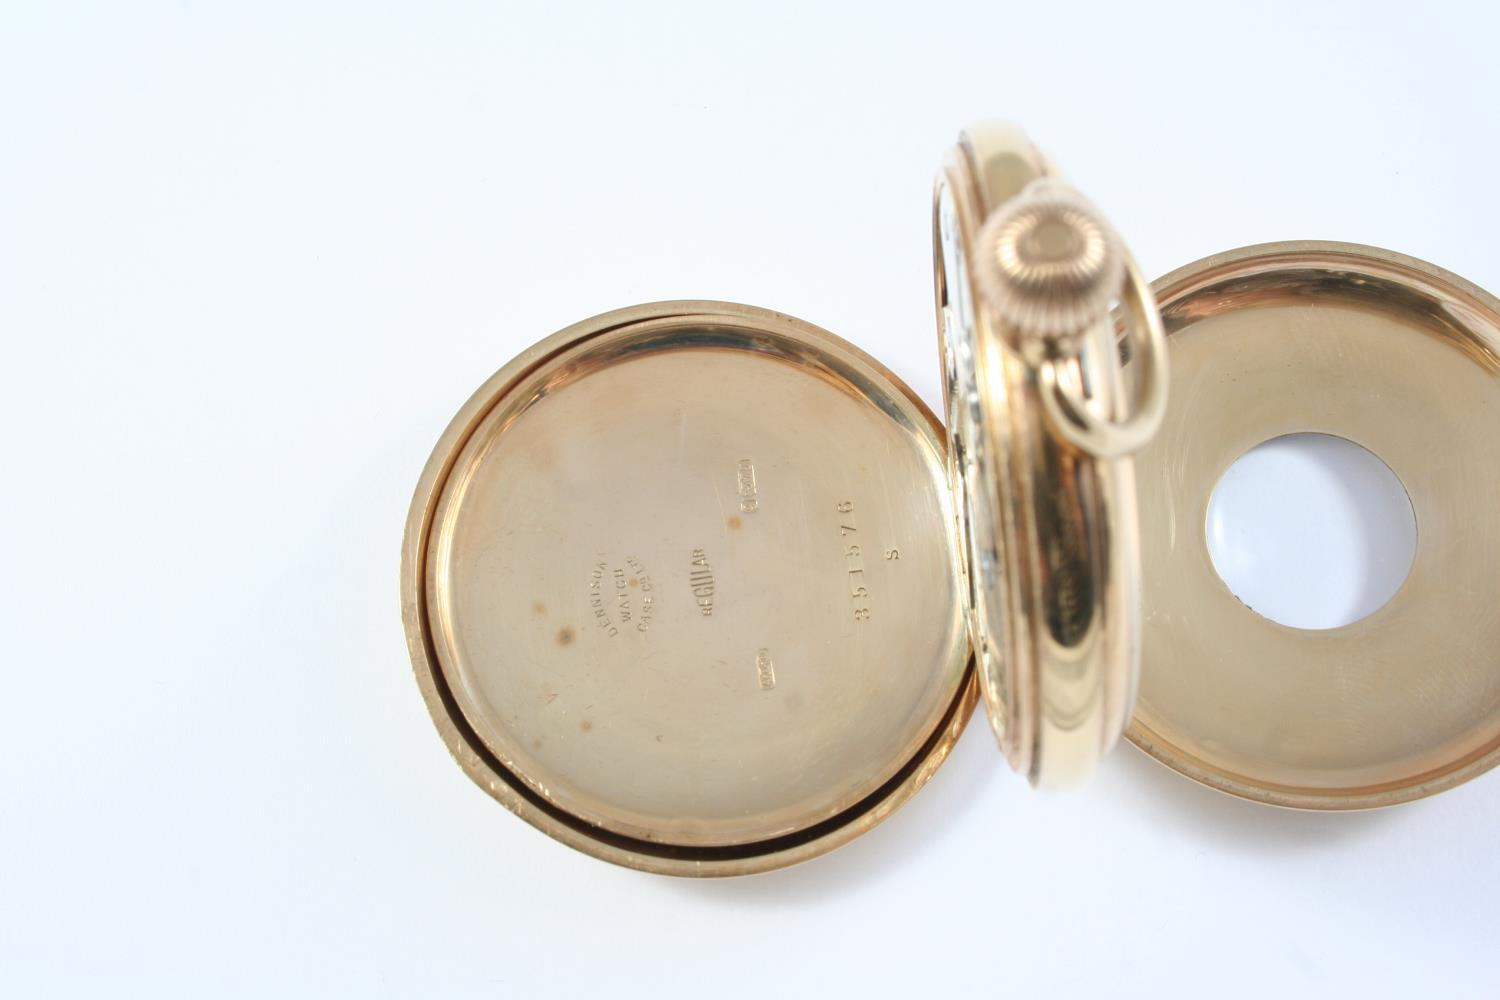 A 9CT GOLD HALF HUNTING CASED POCKET WATCH the white enamel dial with Roman numerals and - Image 4 of 5